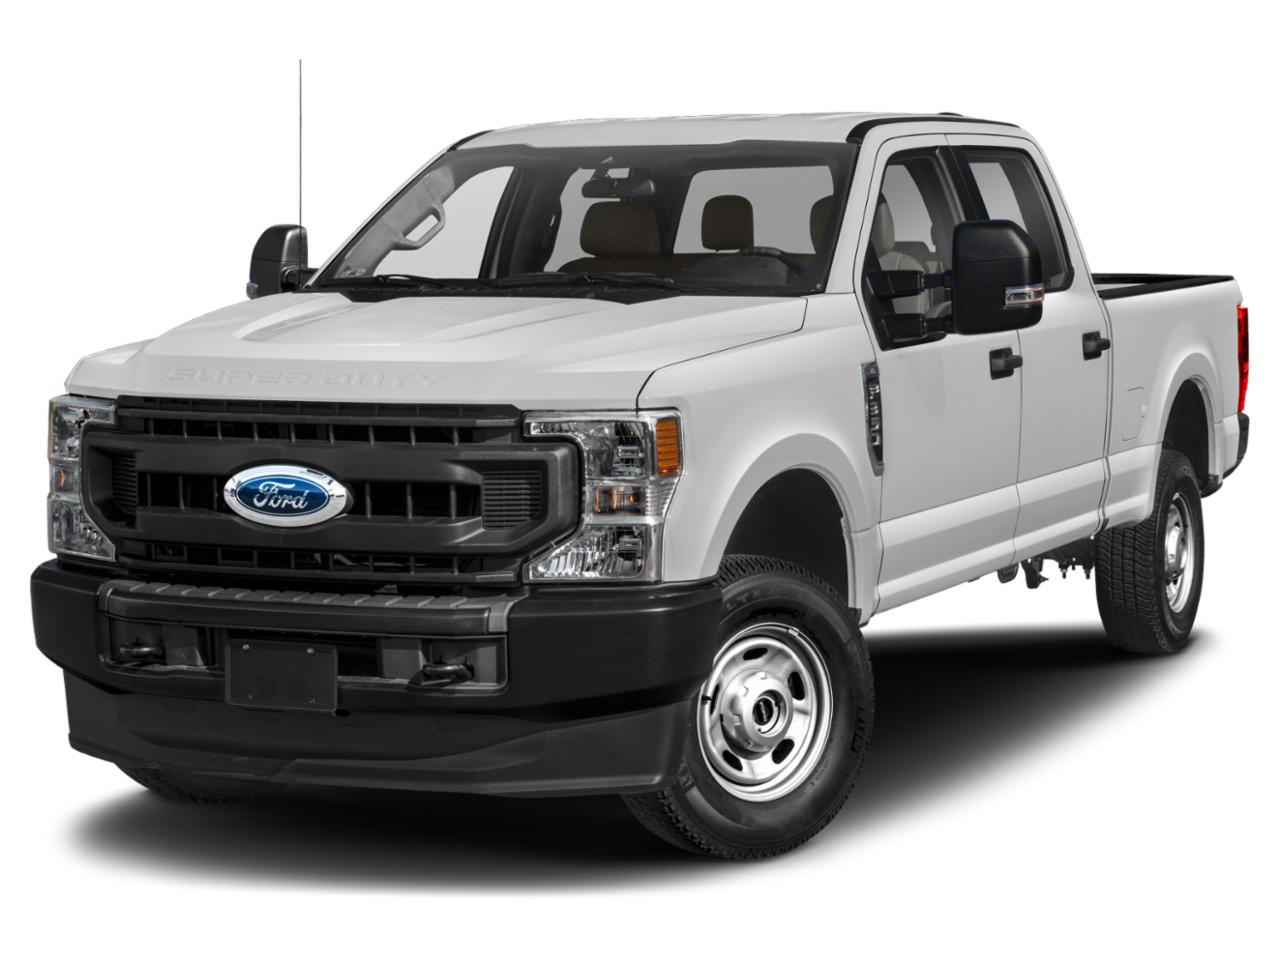 2020 Ford Super Duty F-350 SRW Vehicle Photo in American Fork, UT 84003